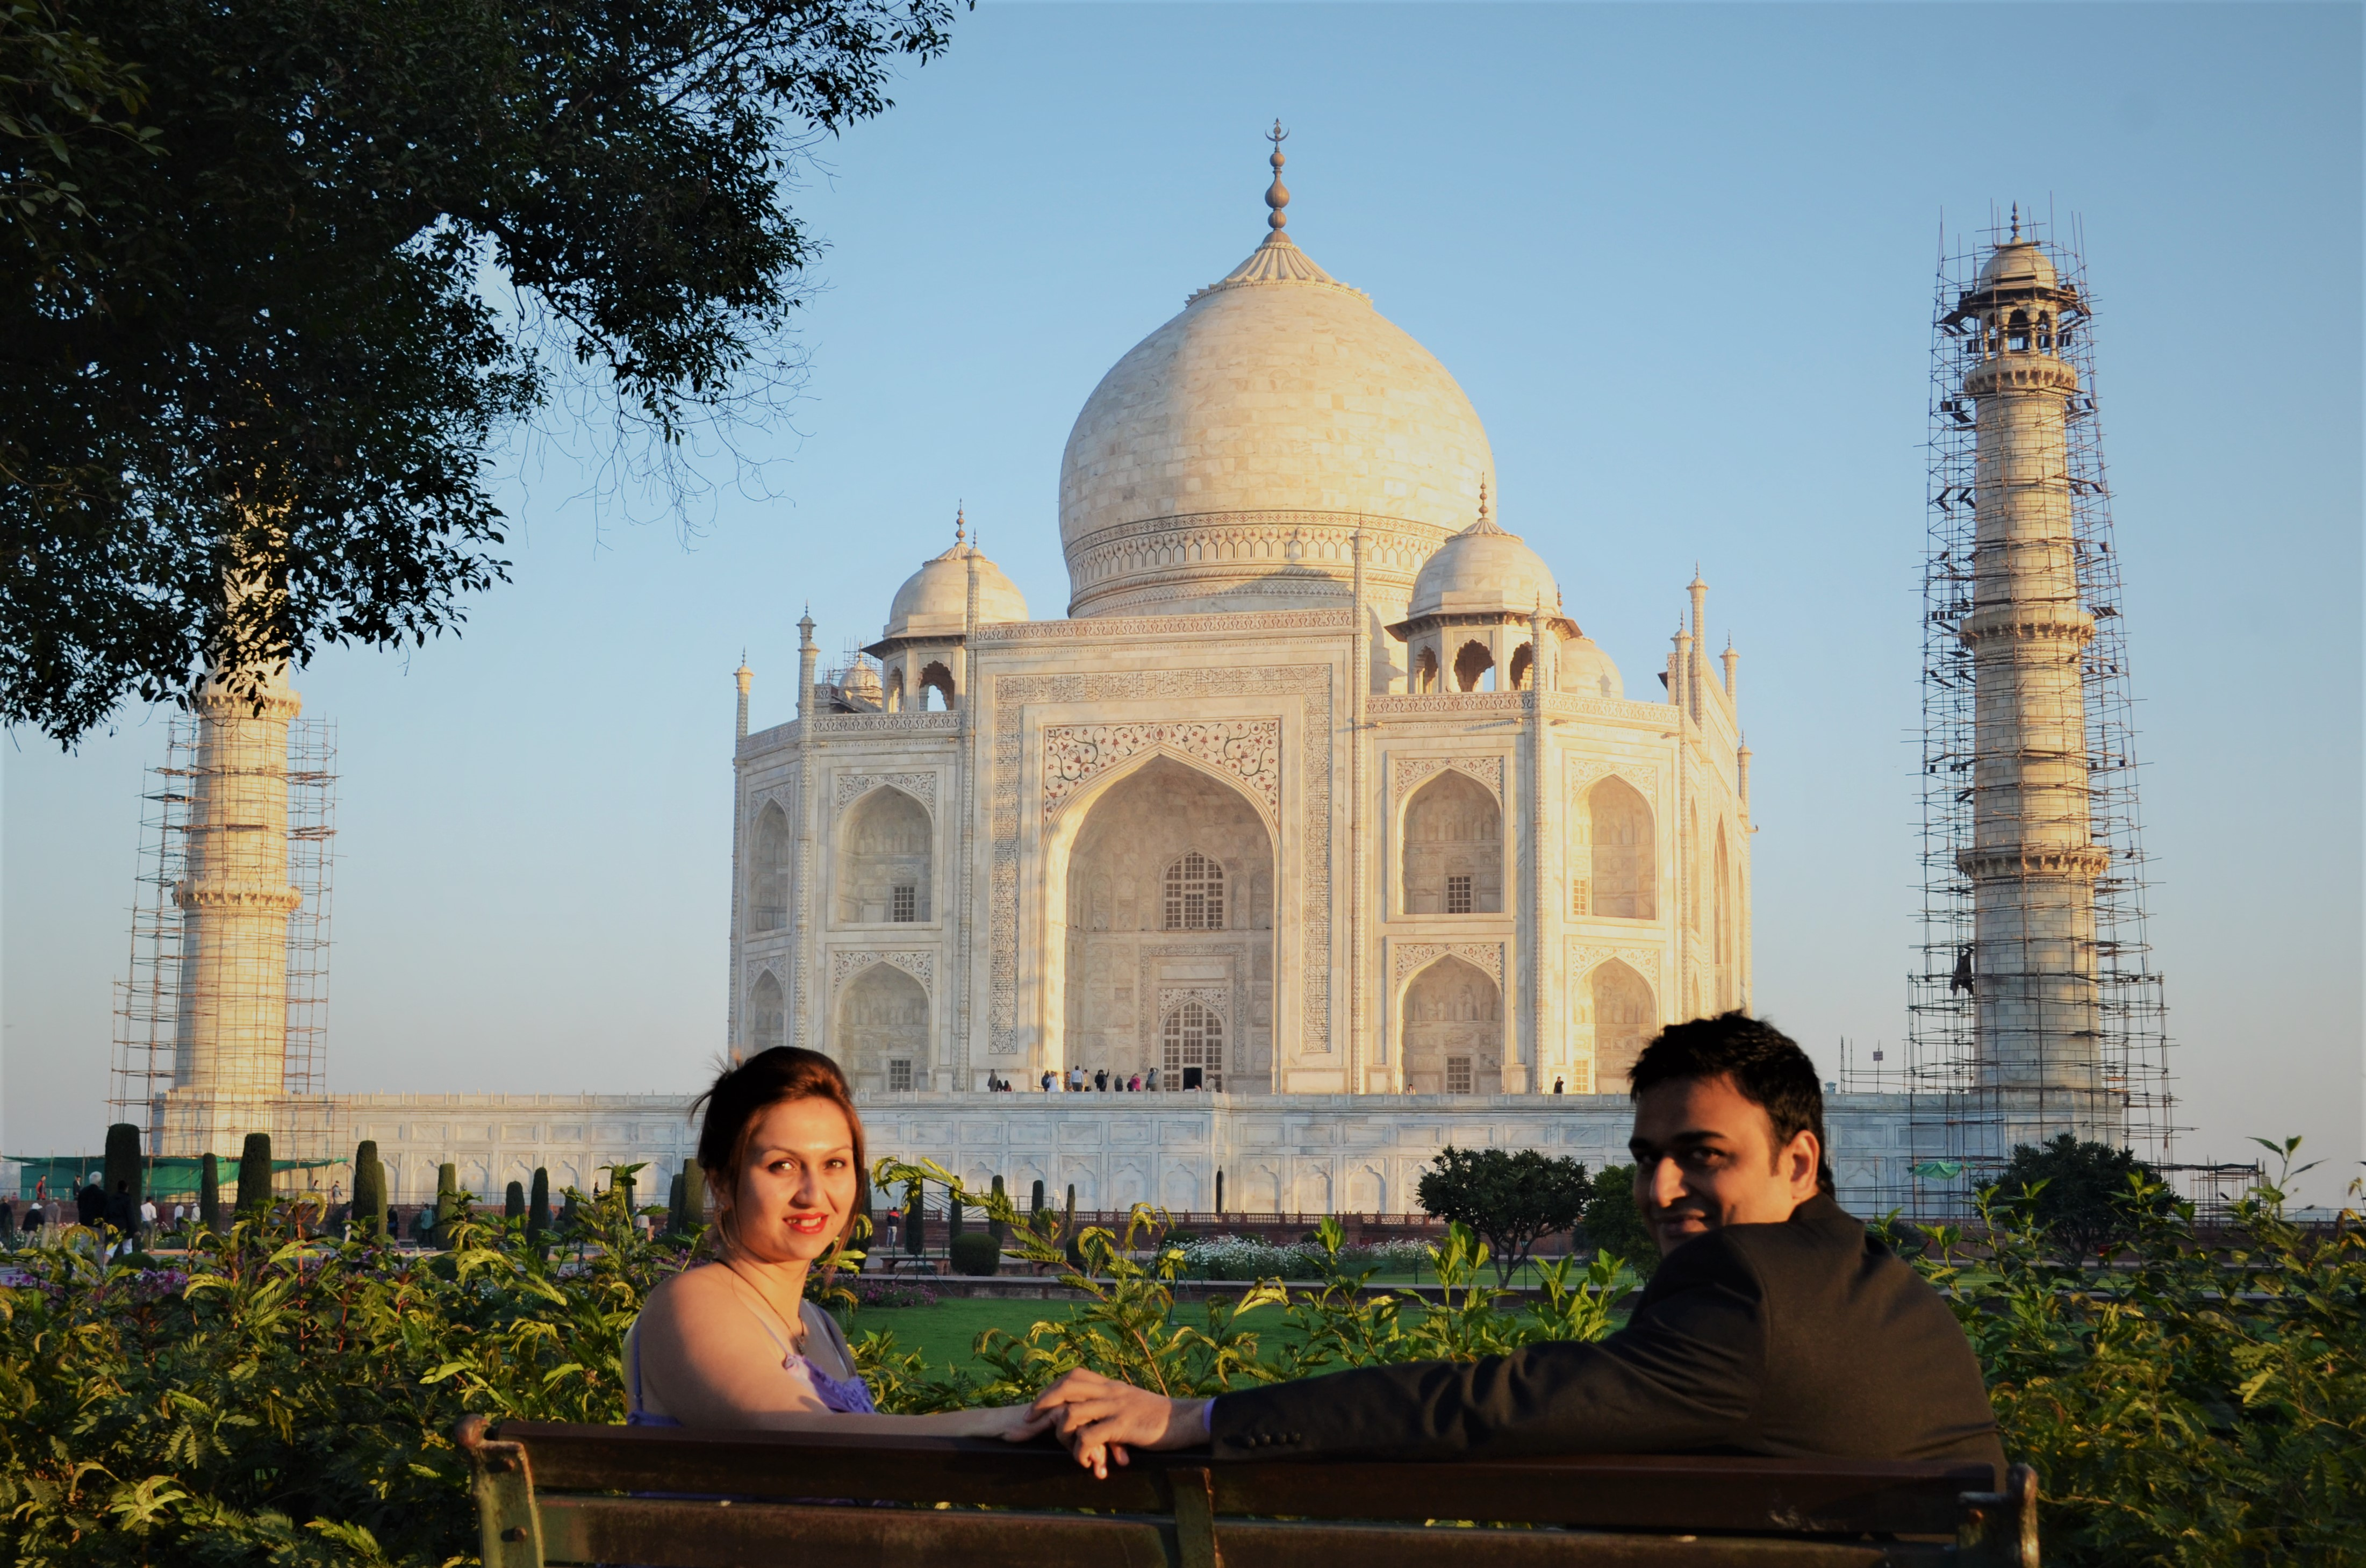 Maya and Rahul at the Taj Mahal